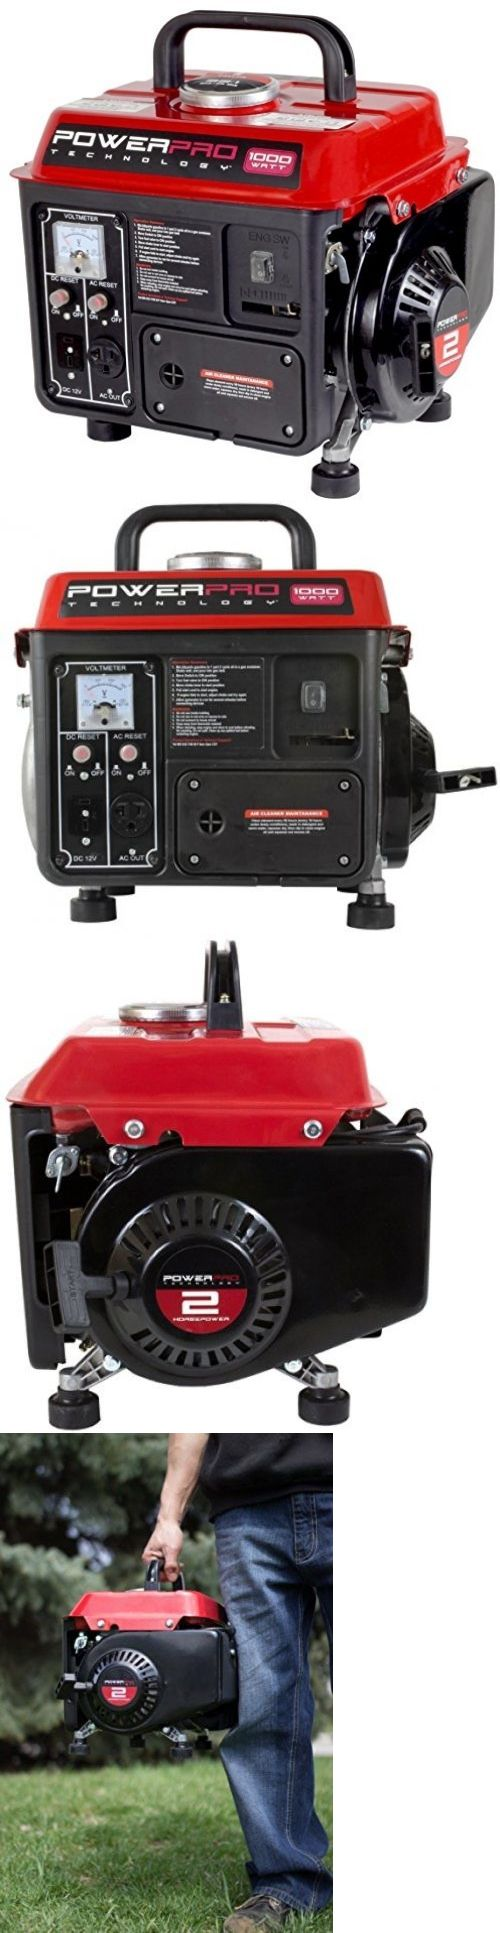 Generators and Heaters 16039: Gas Powered Portable Generator 1000 Watt Lightweight Quiet Camping Home Inverter -> BUY IT NOW ONLY: $159.41 on eBay!